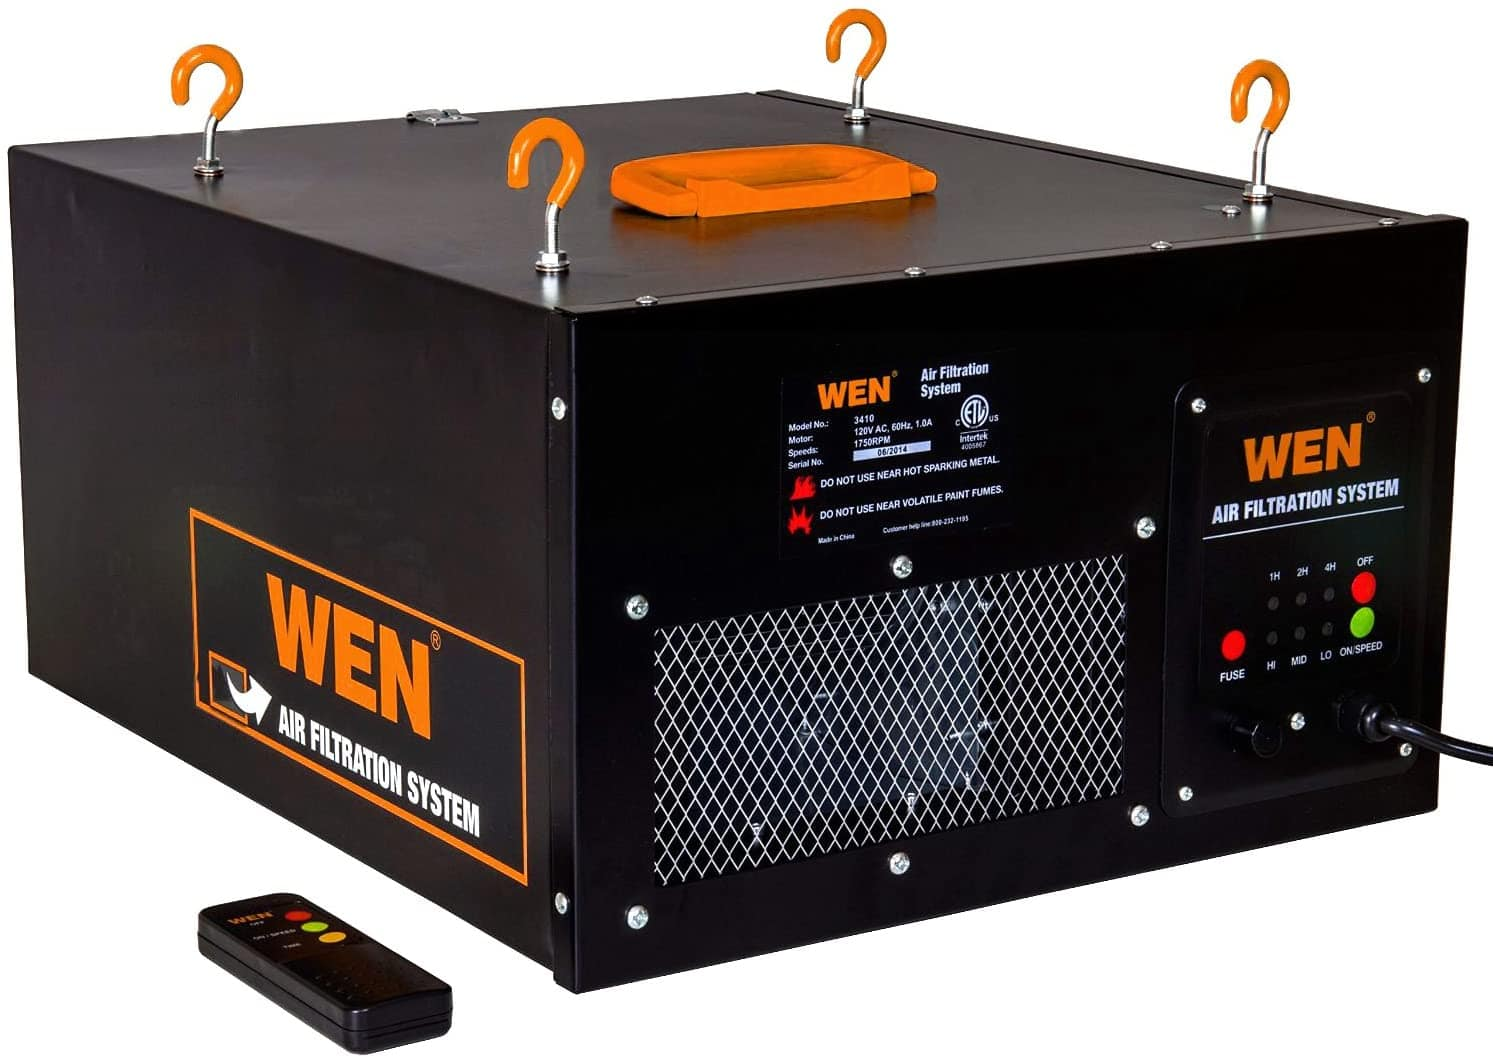 WEN 3410 3-Speed Remote-Controlled Air Filtration System (300/350/400 CFM) - - Amazon.com $132.61